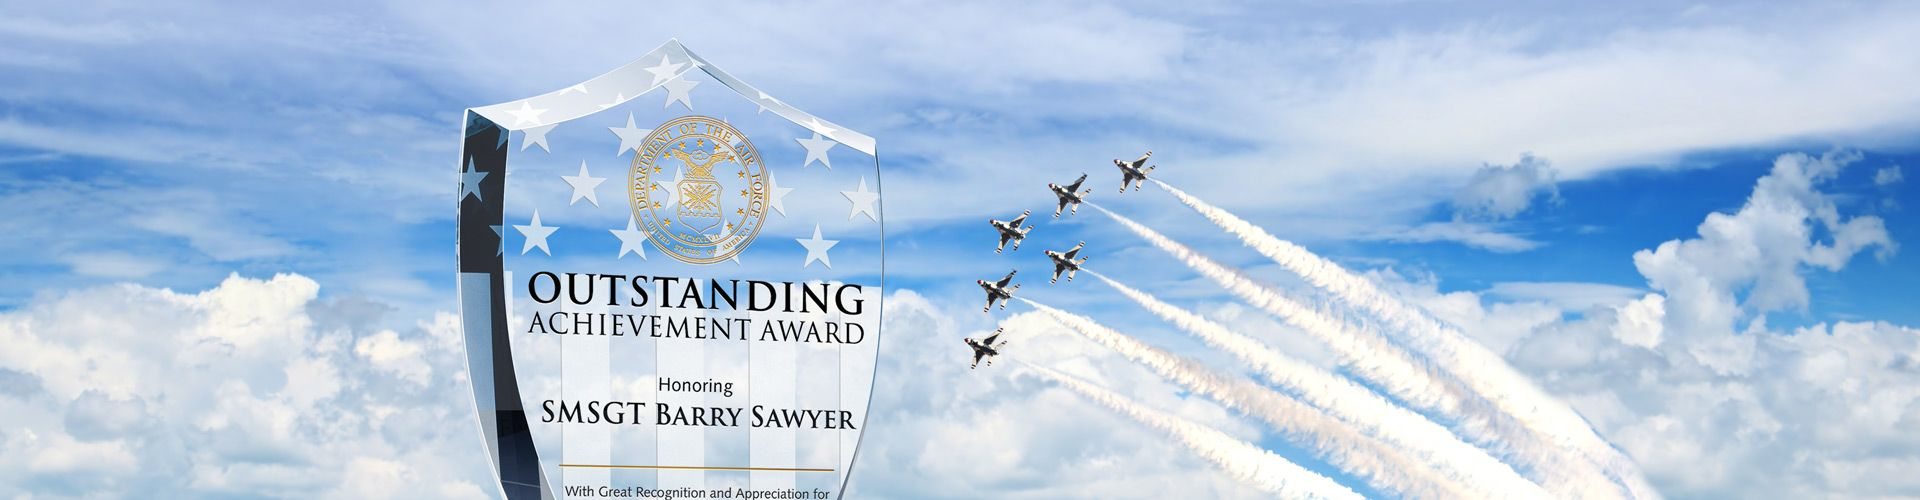 Pesronalized Award Plaques for Air Force Veterans & Members - Banner 1